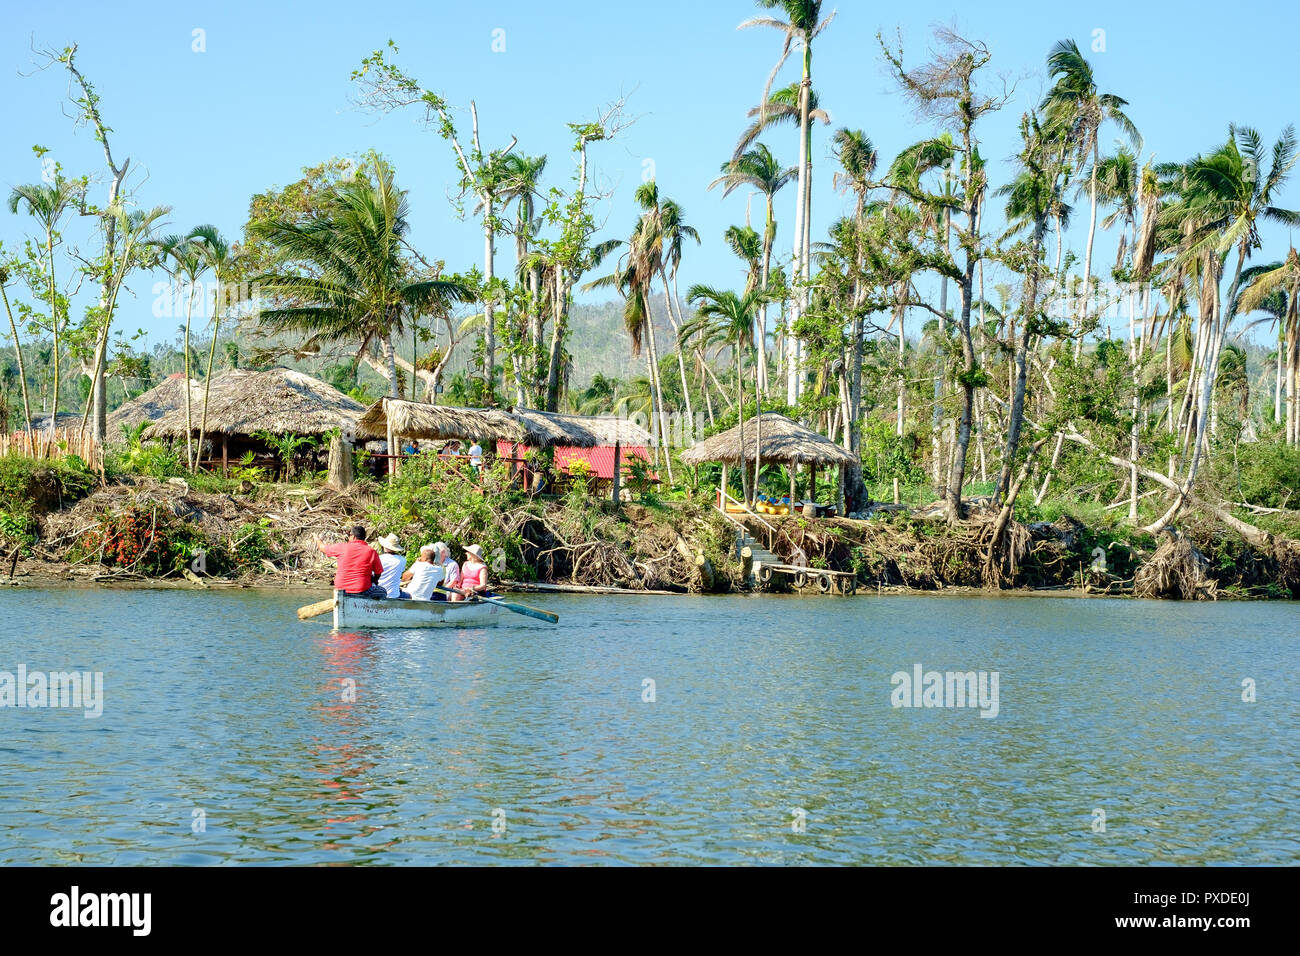 Tourists in a Rowing Boat on the River Toa, Baracoa, Cuba - Stock Image